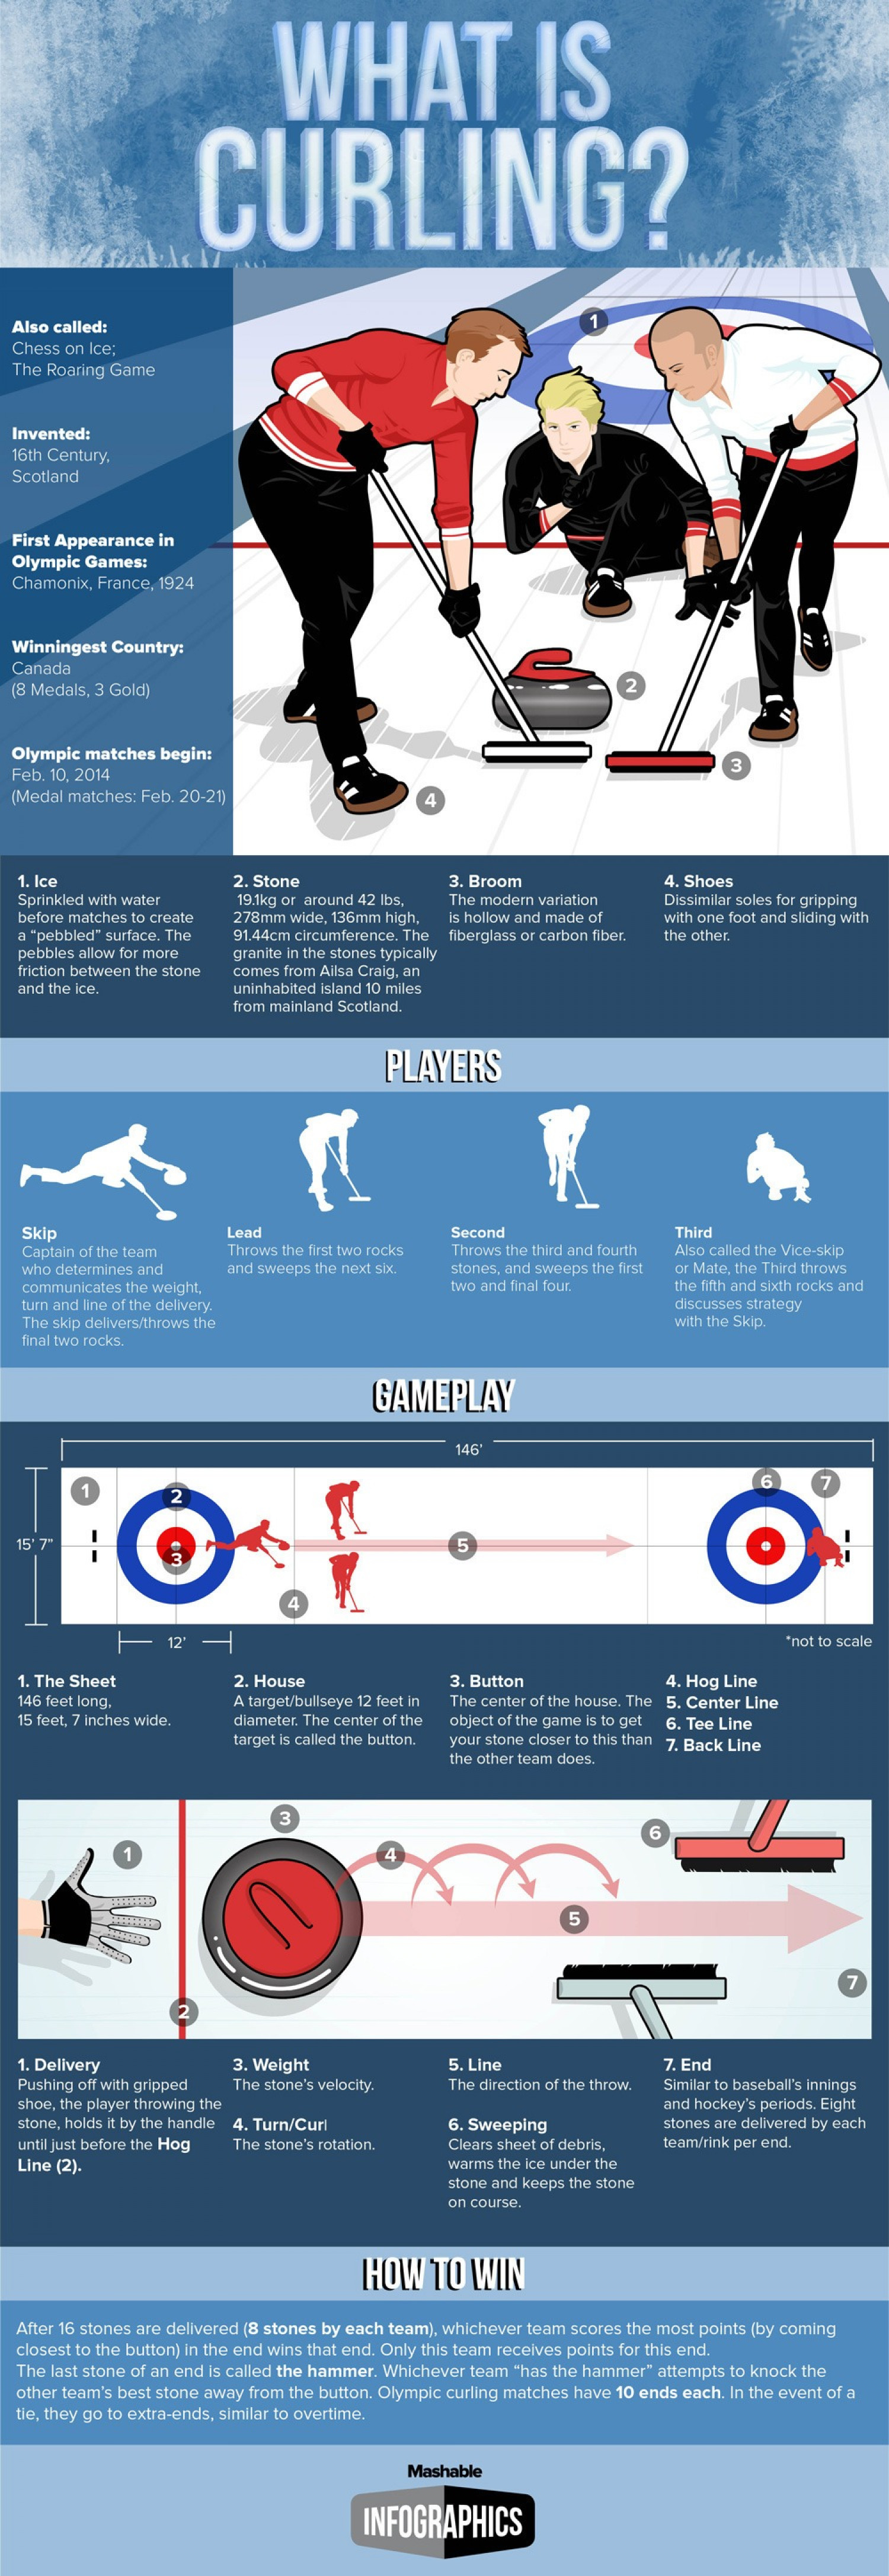 What Is Curling? Infographic